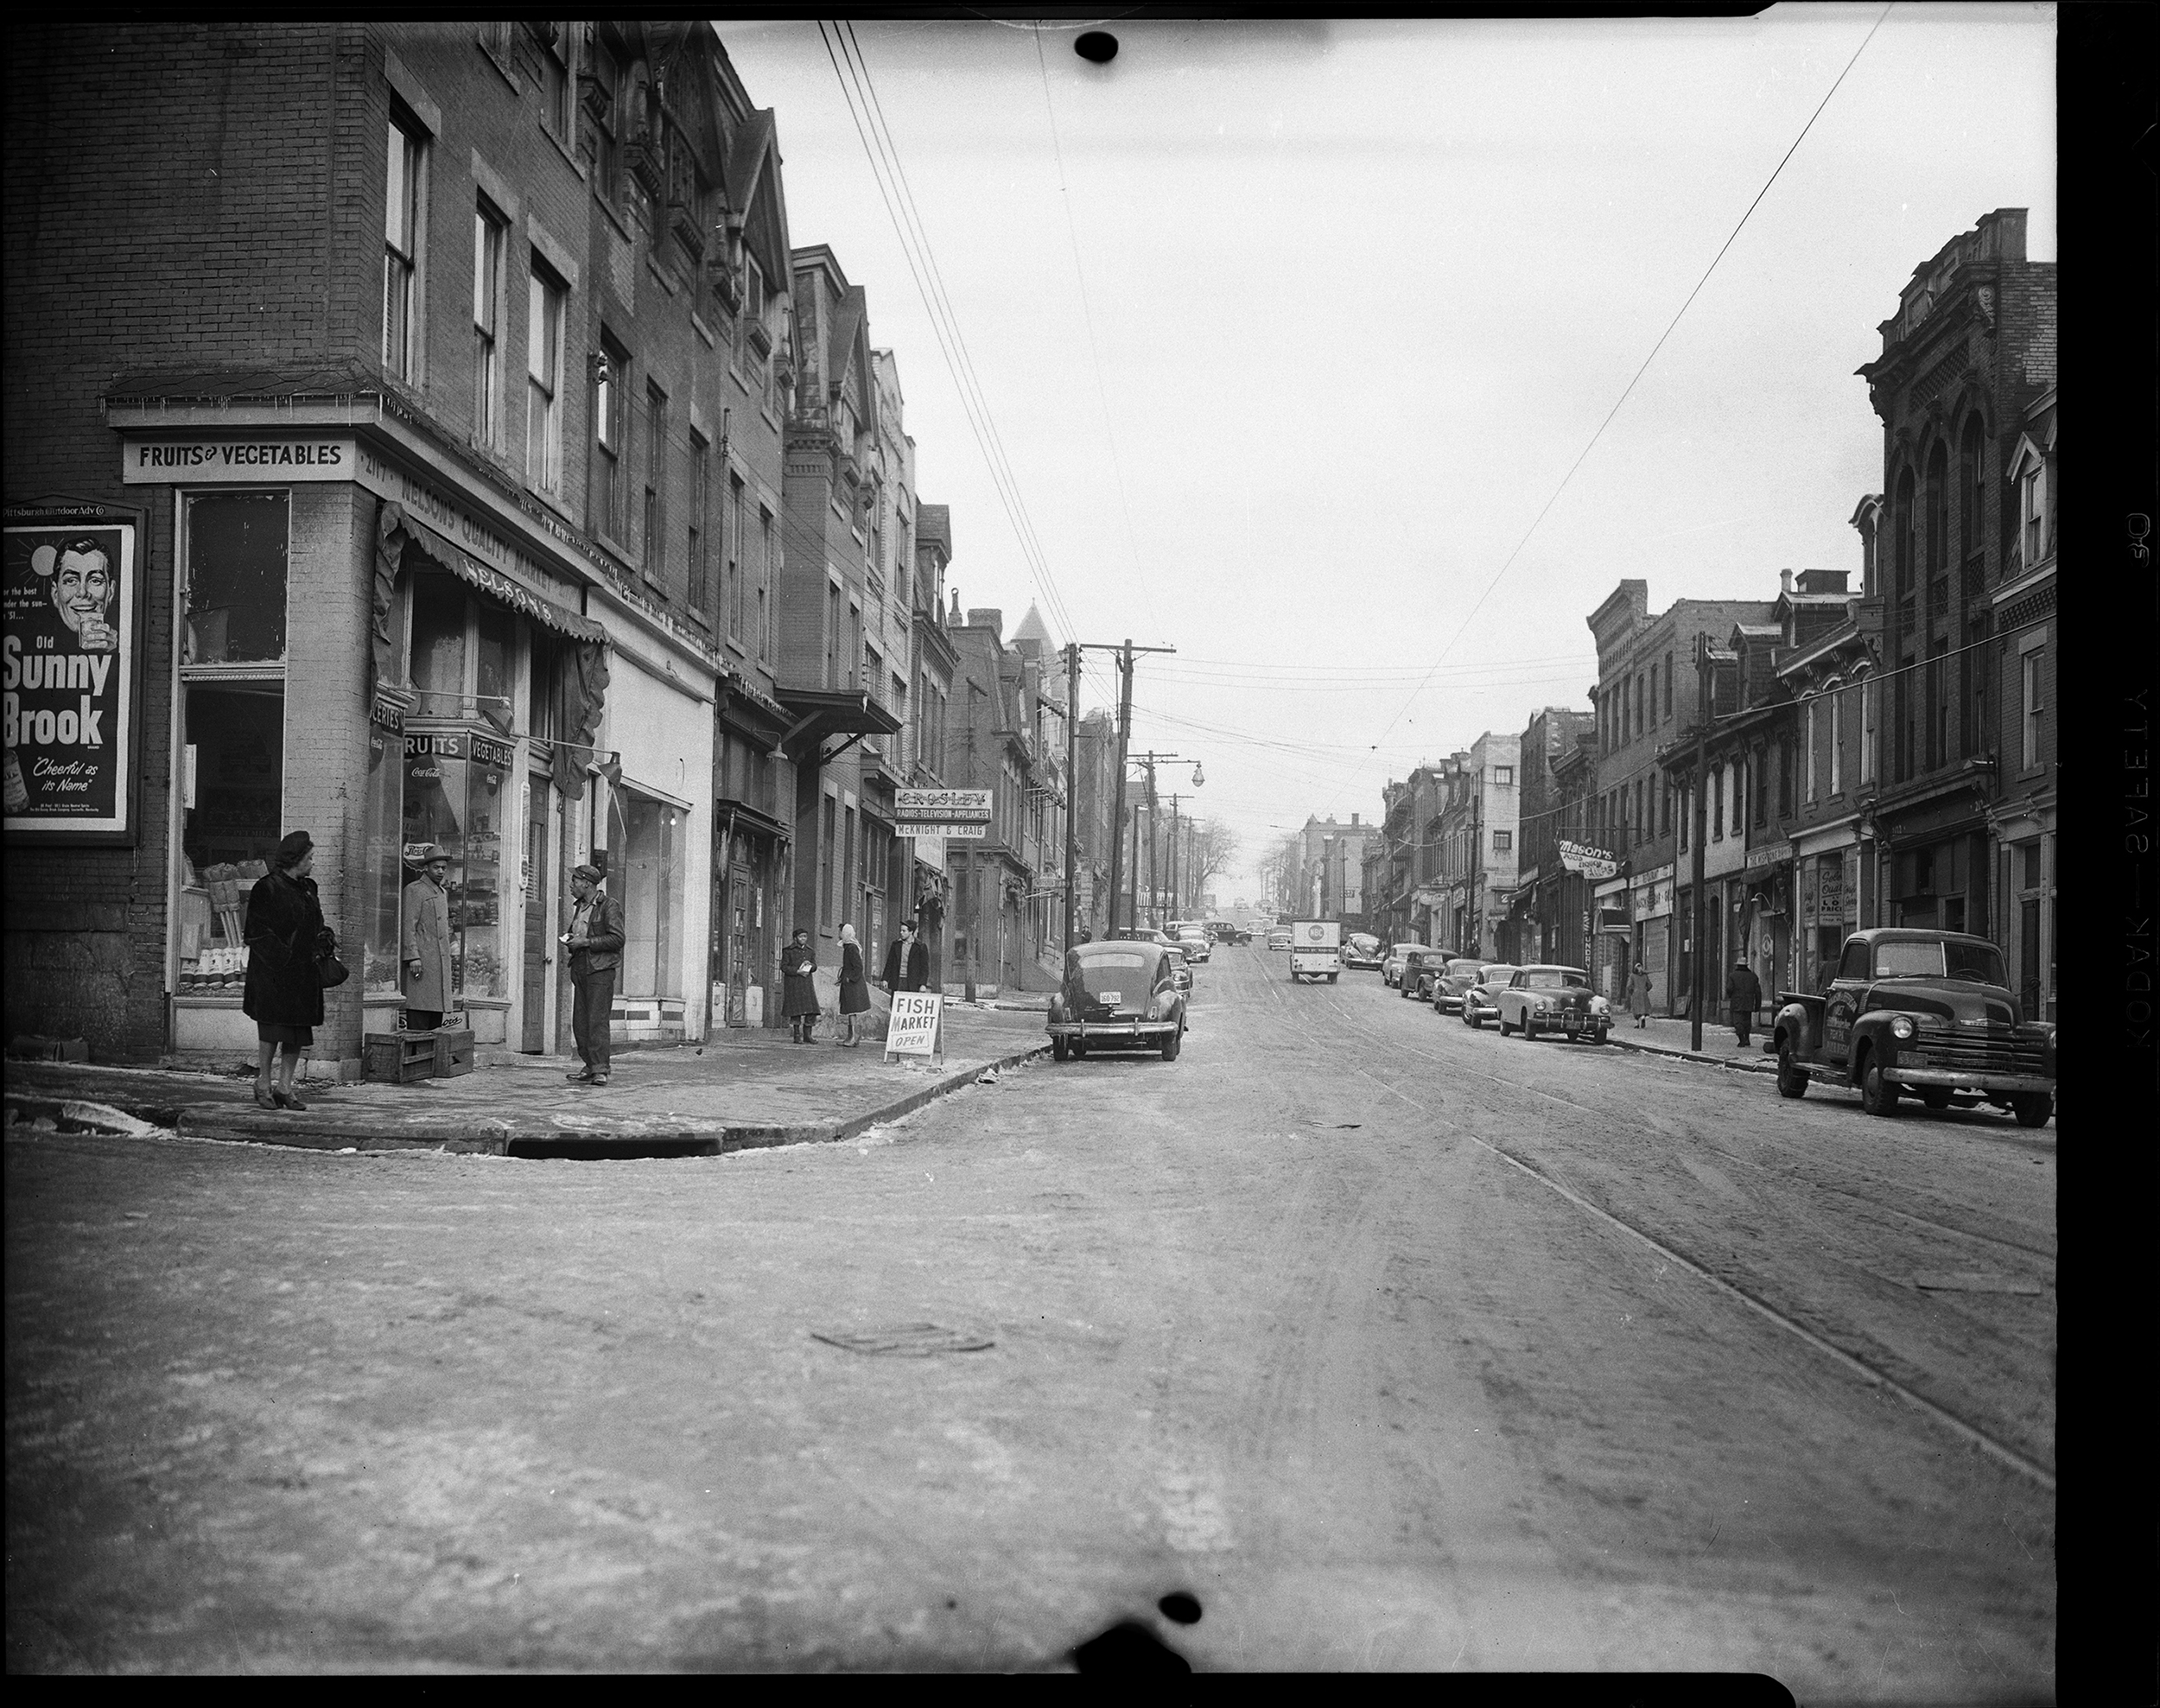 Nelson's Quality Market, Crosley Appliances, and Mason's Cafe on Wylie Avenue at the intersection of Trent Street in the Hill District. c. 1946 - 1960. (Photo by Charles 'Teenie' Harris/Carnegie Museum of Art via Getty Images)